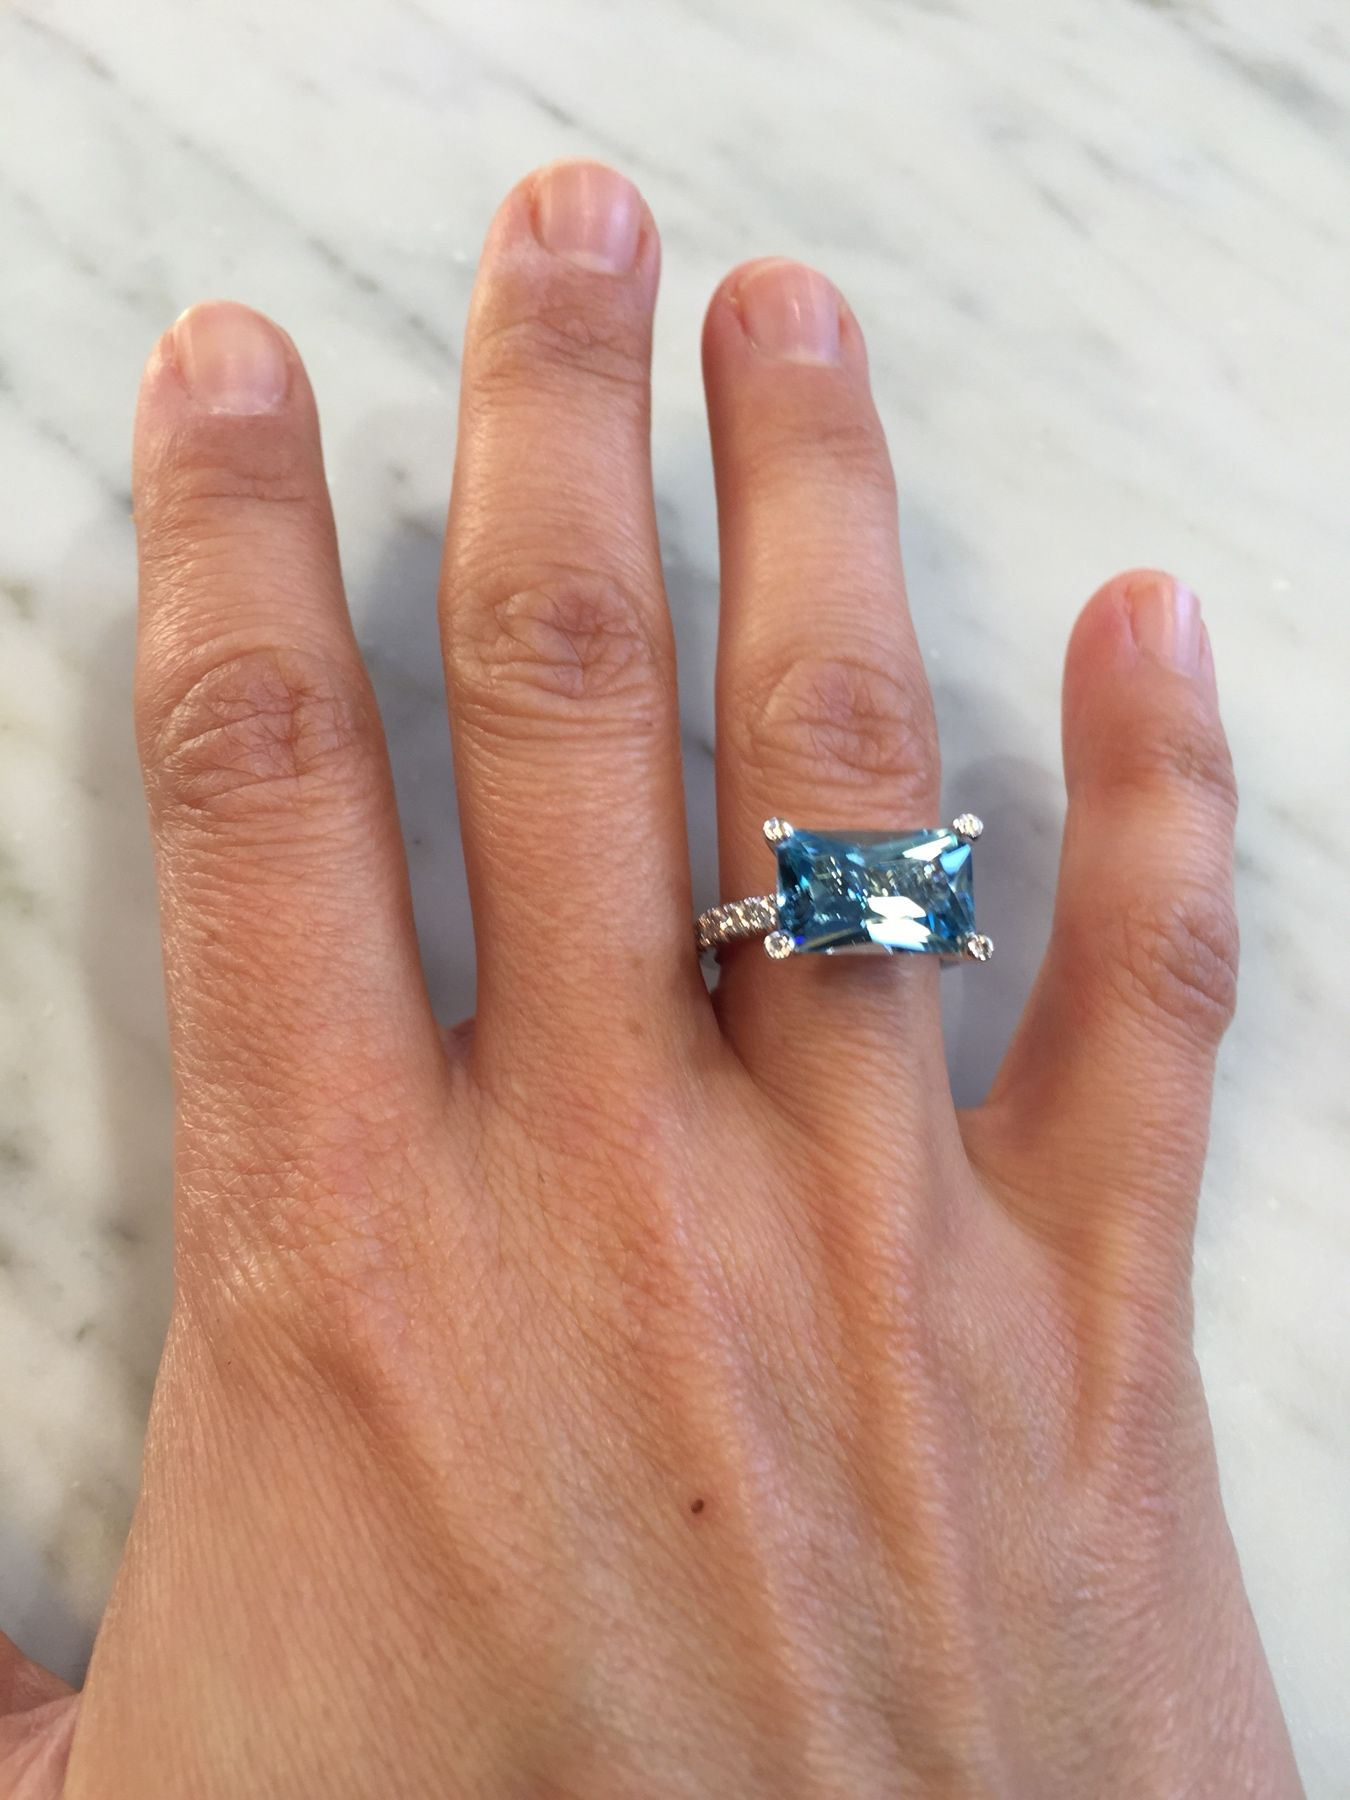 This beautiful aquamarine and diamond ring is handmade in 18k white gold. Based on our Lumiere ring design, the radiant cut aquamarine is left as open as possible to allow abundant light into the stone. A perfect engagement or dress ring, it stacks beautifully with a diamond wedding band. Shop it at www.lizunova.com/products/lumiere-aqua-diamond-ring ❤️